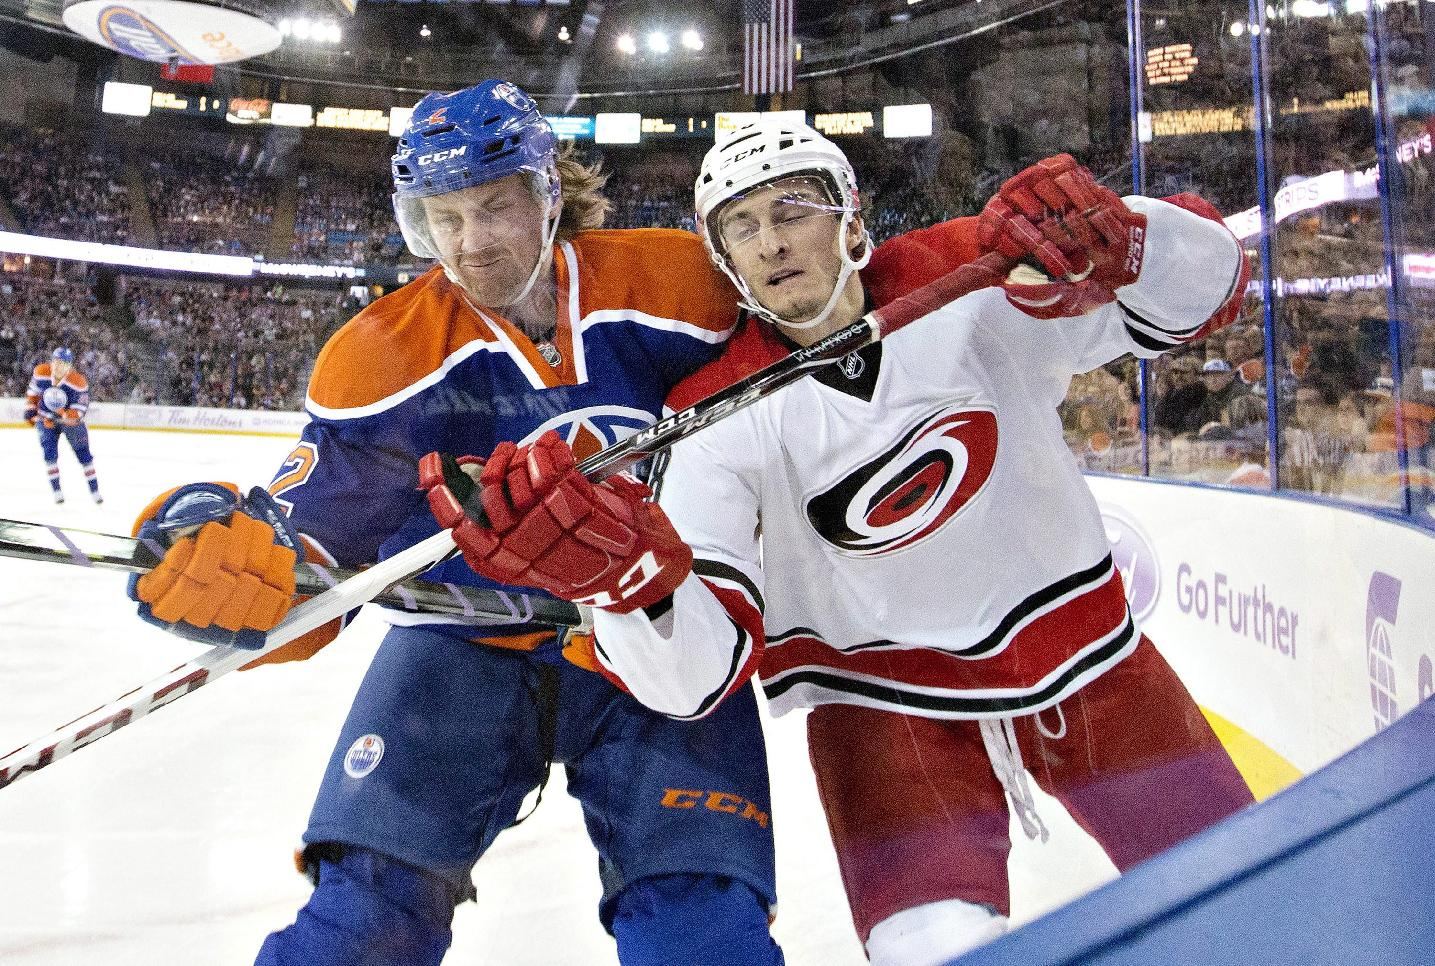 Carolina Hurricanes' Alexander Semin, right, is checked by Edmonton Oilers' Jeff Petry during the first period of an NHL hockey game Friday, Oct. 24, 2014, in Edmonton, Alberta. (AP Photo/The Canadian Press, Jason Franson)